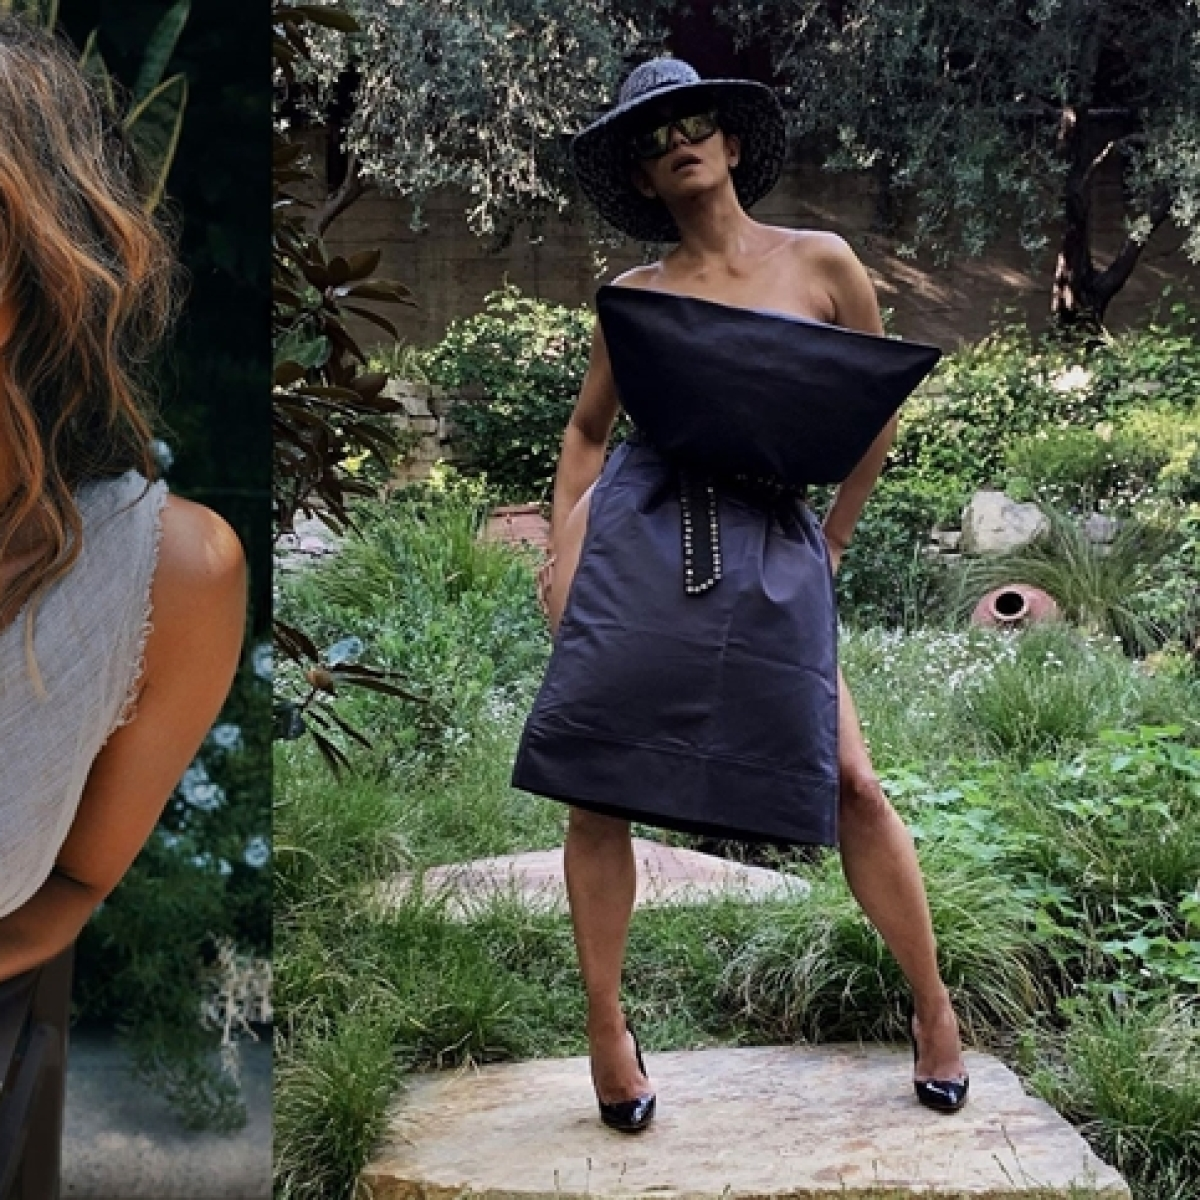 Halle Berry wears nothing but a pillow as she takes the latest quarantine challenge on social media